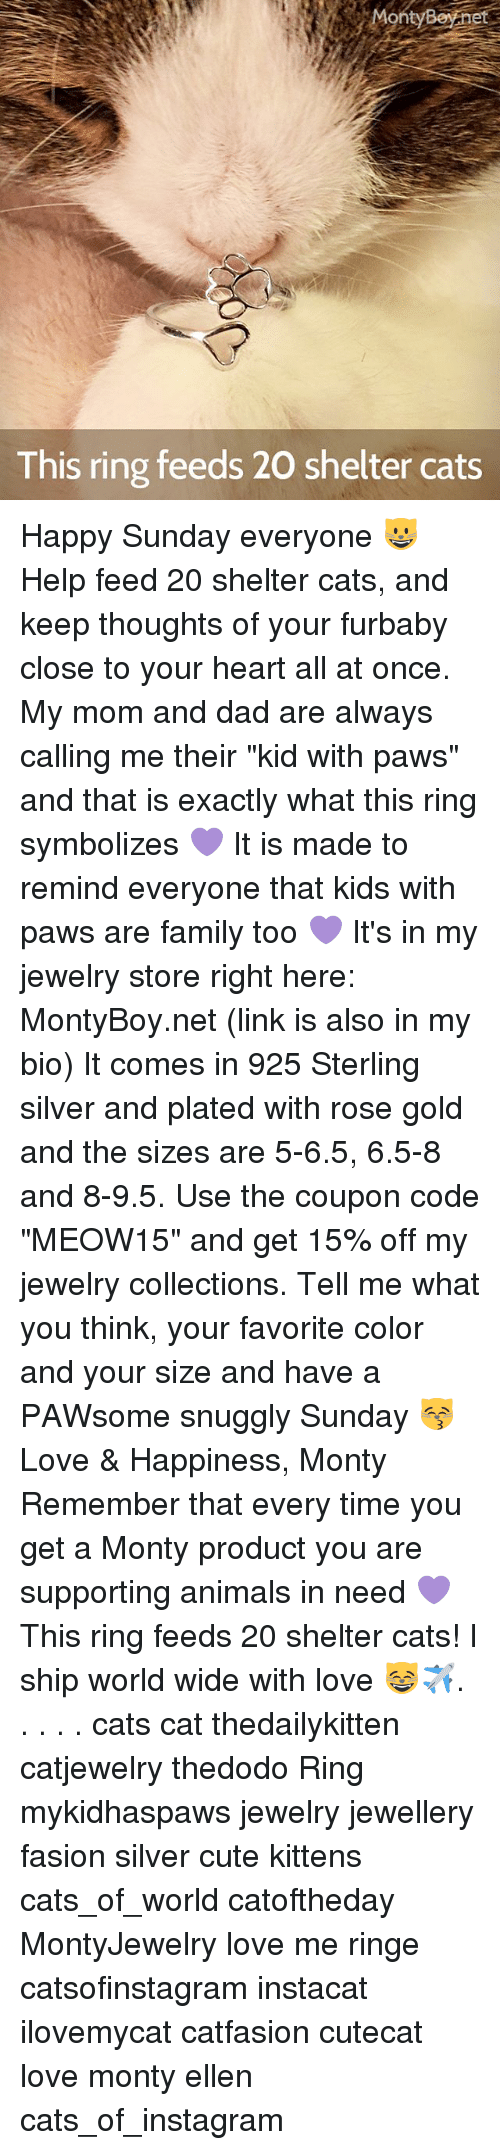 "cute kittens: On  Boynet  This ring feeds 20 shelter cats Happy Sunday everyone 😺 Help feed 20 shelter cats, and keep thoughts of your furbaby close to your heart all at once. My mom and dad are always calling me their ""kid with paws"" and that is exactly what this ring symbolizes 💜 It is made to remind everyone that kids with paws are family too 💜 It's in my jewelry store right here: MontyBoy.net (link is also in my bio) It comes in 925 Sterling silver and plated with rose gold and the sizes are 5-6.5, 6.5-8 and 8-9.5. Use the coupon code ""MEOW15"" and get 15% off my jewelry collections. Tell me what you think, your favorite color and your size and have a PAWsome snuggly Sunday 😽 Love & Happiness, Monty Remember that every time you get a Monty product you are supporting animals in need 💜 This ring feeds 20 shelter cats! I ship world wide with love 😸✈️. . . . . cats cat thedailykitten catjewelry thedodo Ring mykidhaspaws jewelry jewellery fasion silver cute kittens cats_of_world catoftheday MontyJewelry love me ringe catsofinstagram instacat ilovemycat catfasion cutecat love monty ellen cats_of_instagram"